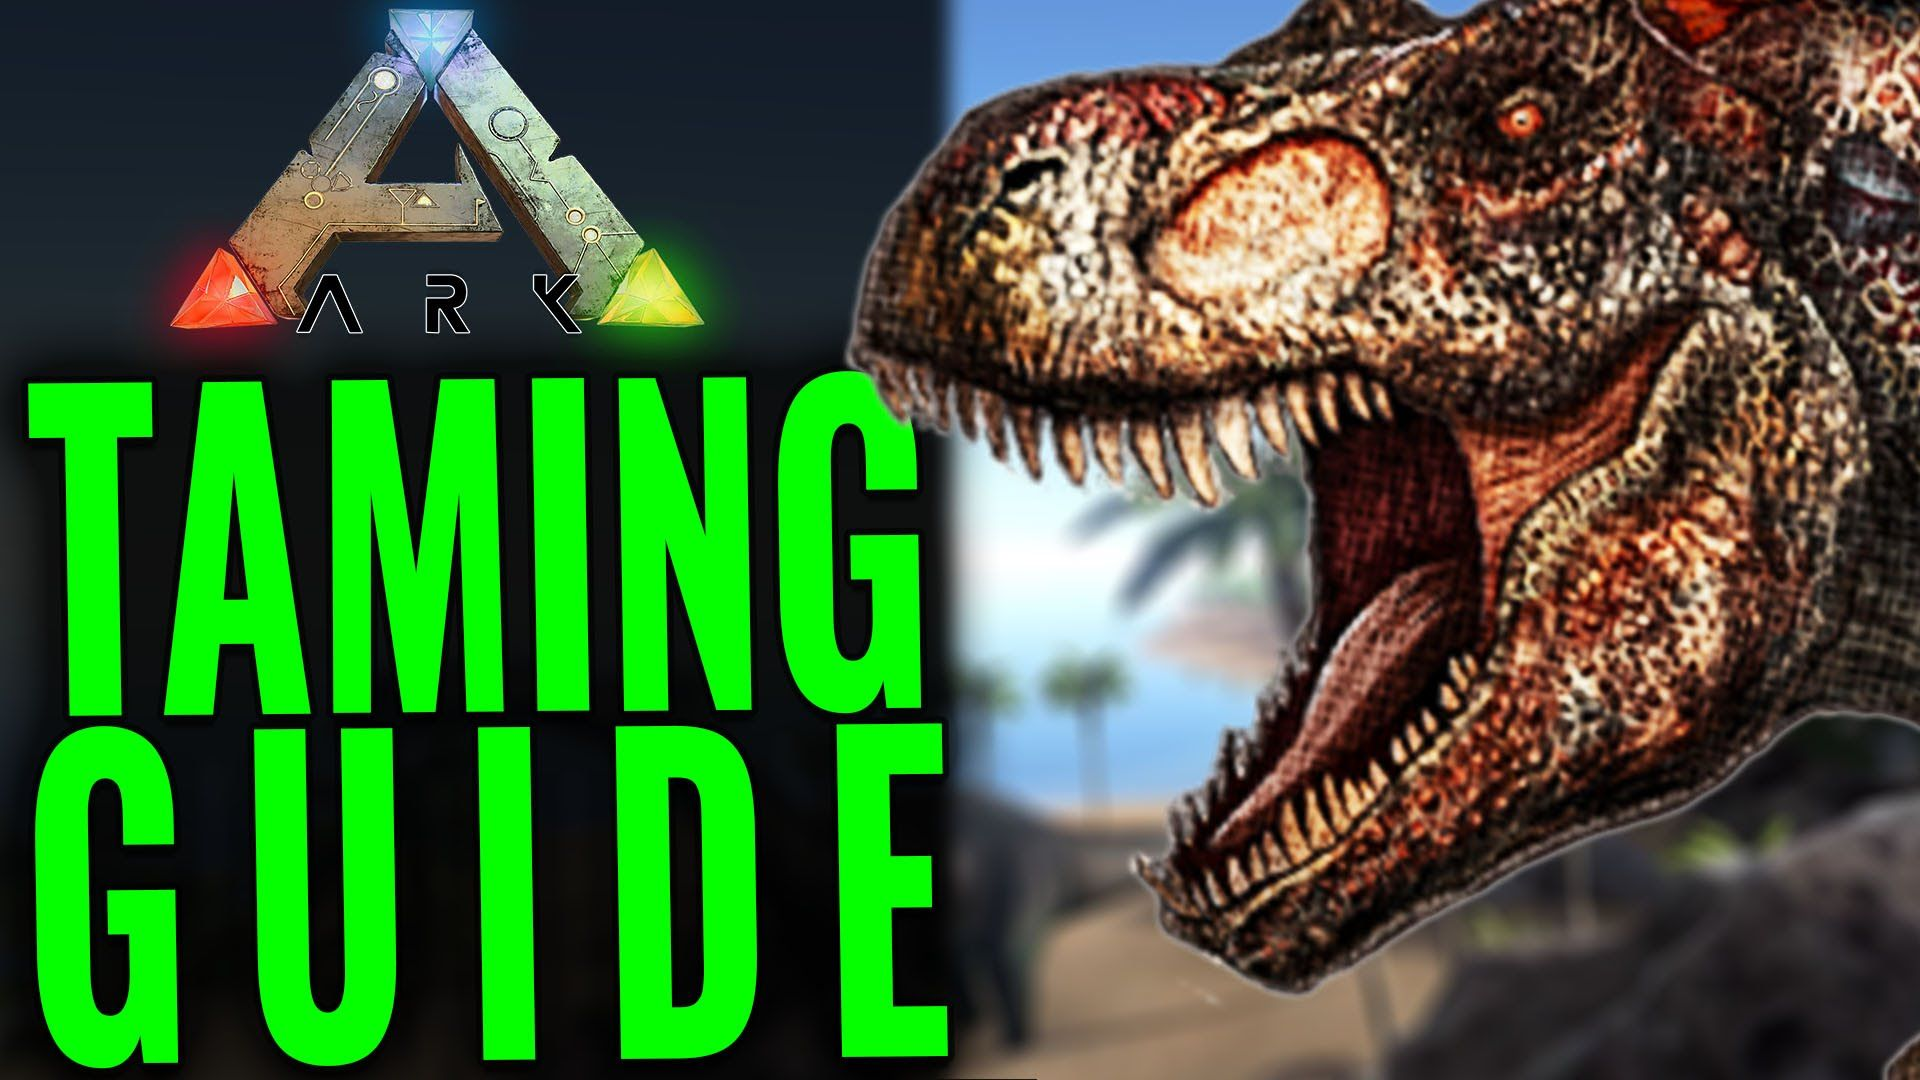 Ark Survival Evolved Is All About Taming Dinos And The Trike One Of Best Ones To Start With It S Tough Knock Out But Its Rewards Are Huge